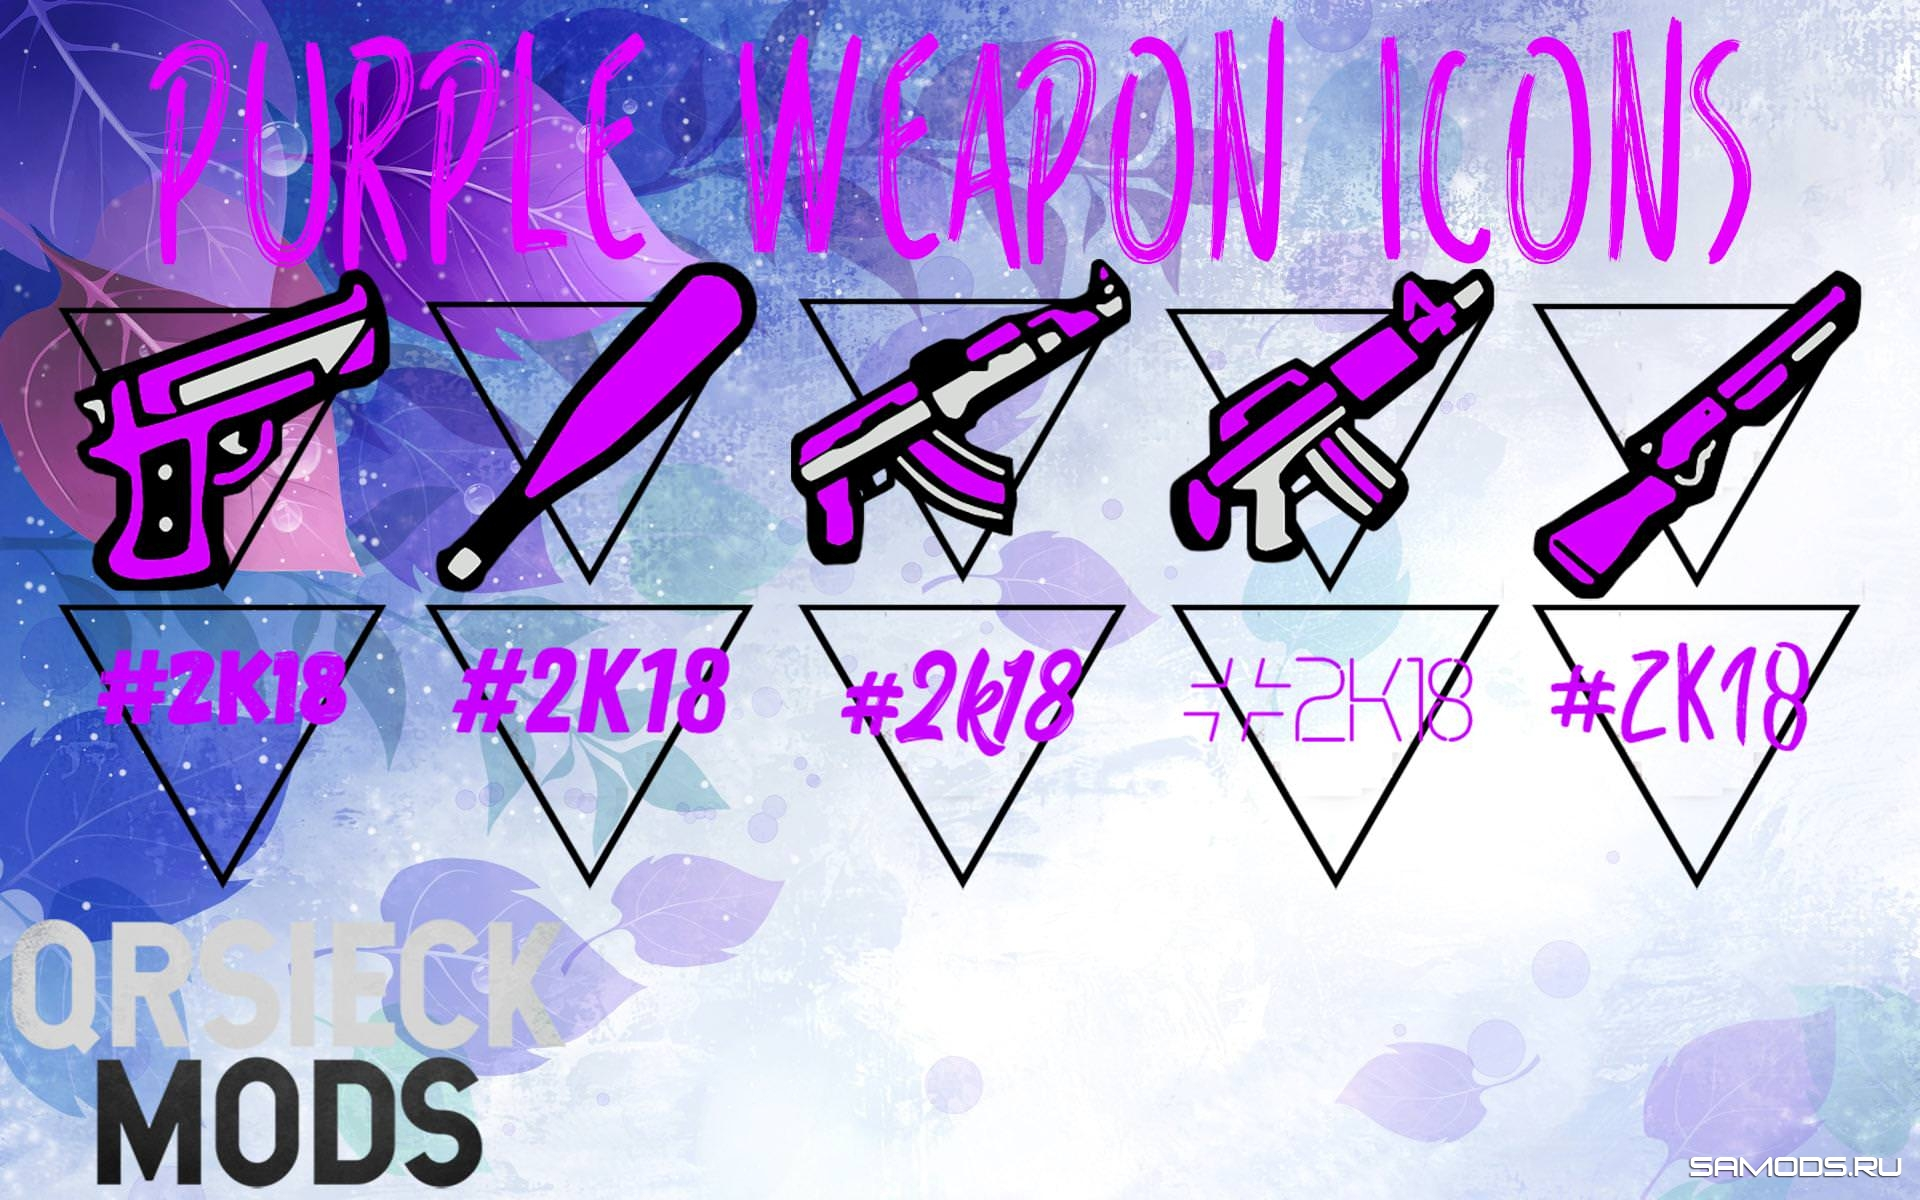 PURPLE WEAPON ICONS